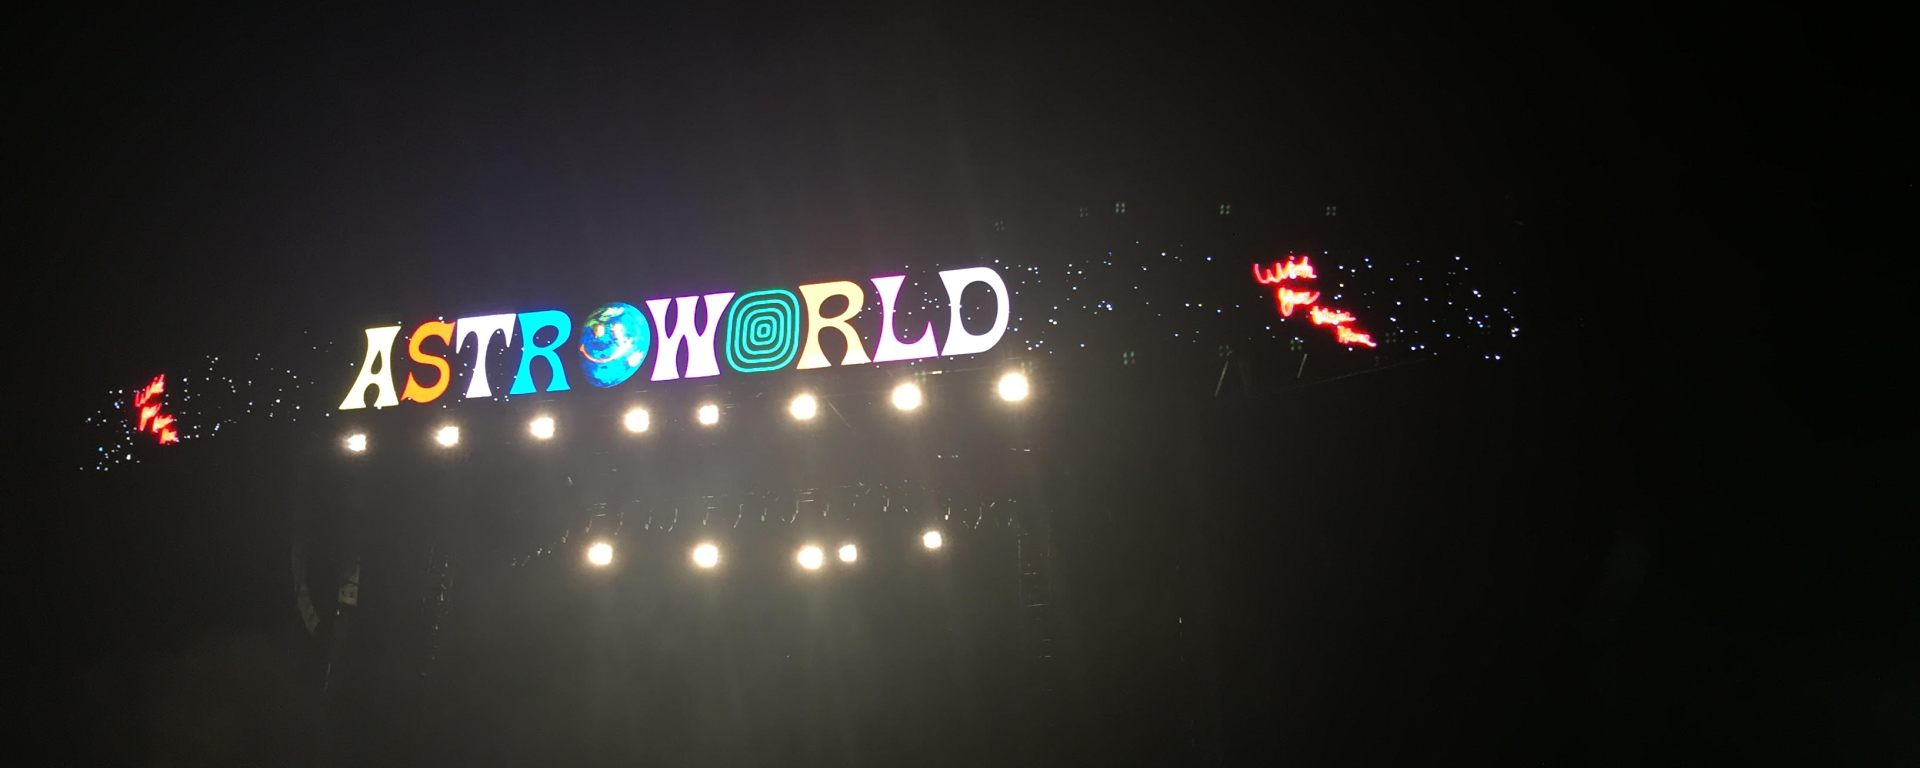 The picture features the Astroworld logo sign at Astroworld Festival.